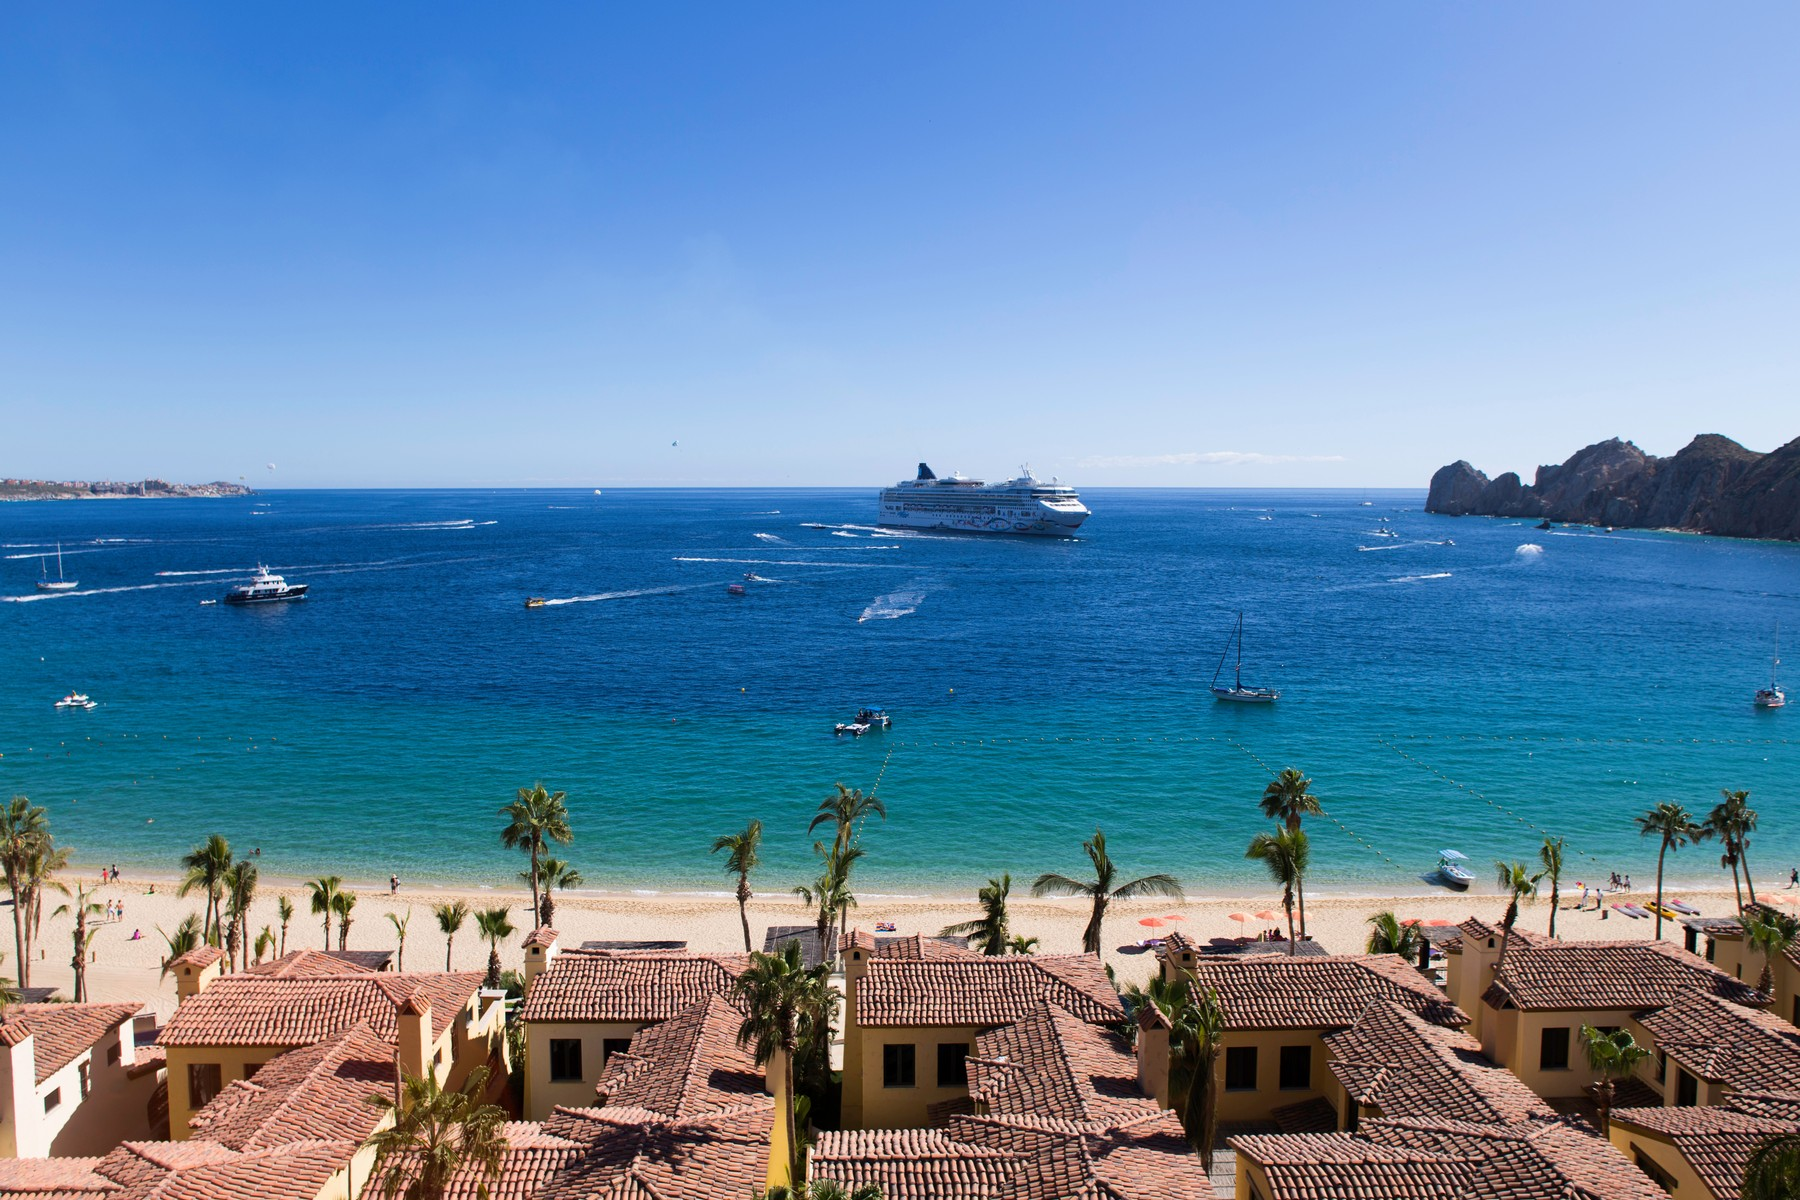 Condominium for Rent at Hacienda Penthouse 4-602 Cabo San Lucas Hacienda Beach Club and Residences Cabo San Lucas, 23453 Mexico